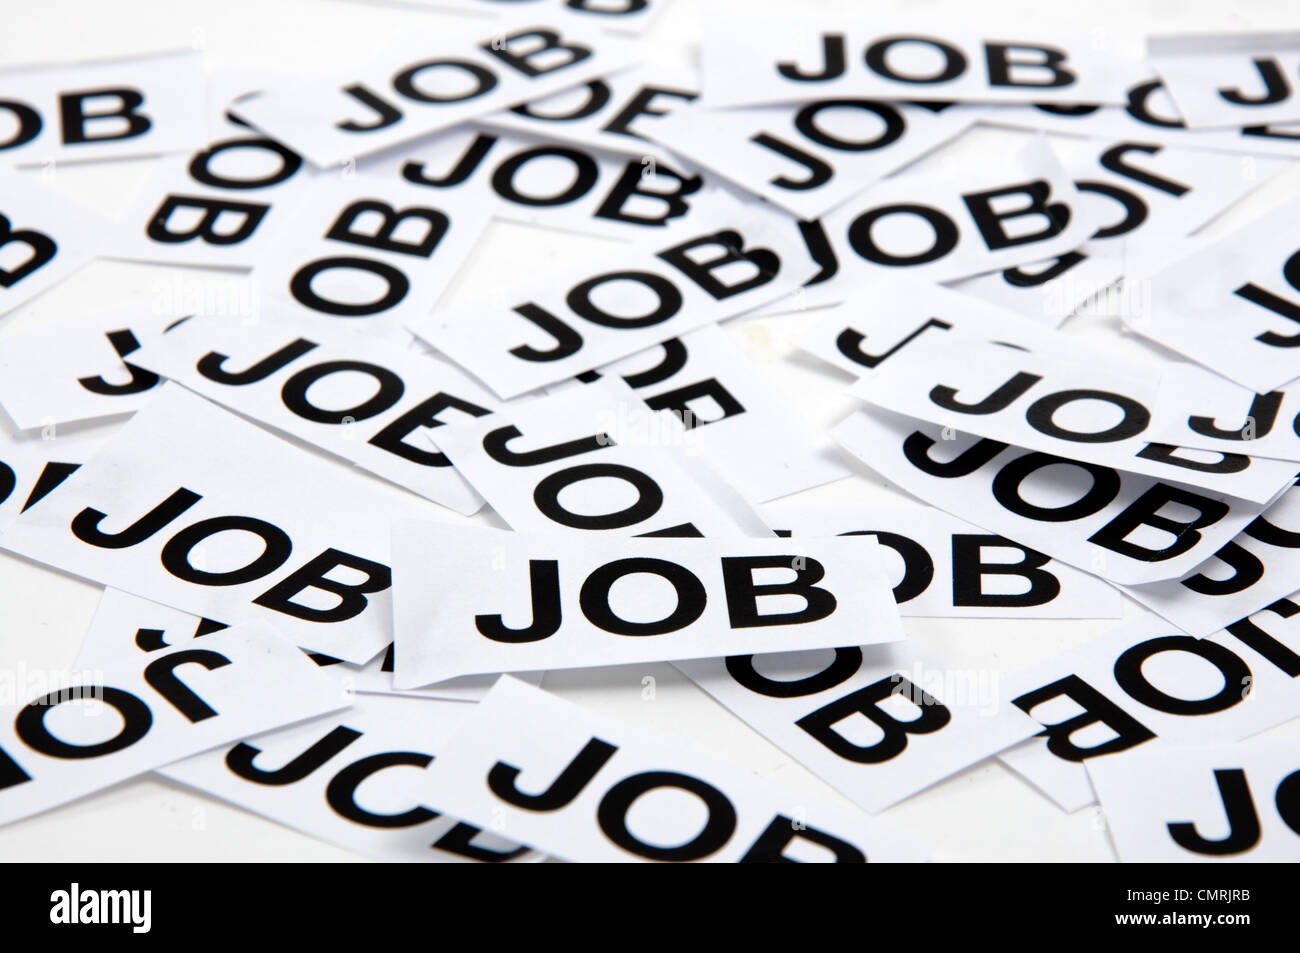 Printed paper notes with the word 'Job' in black ink - Stock Image